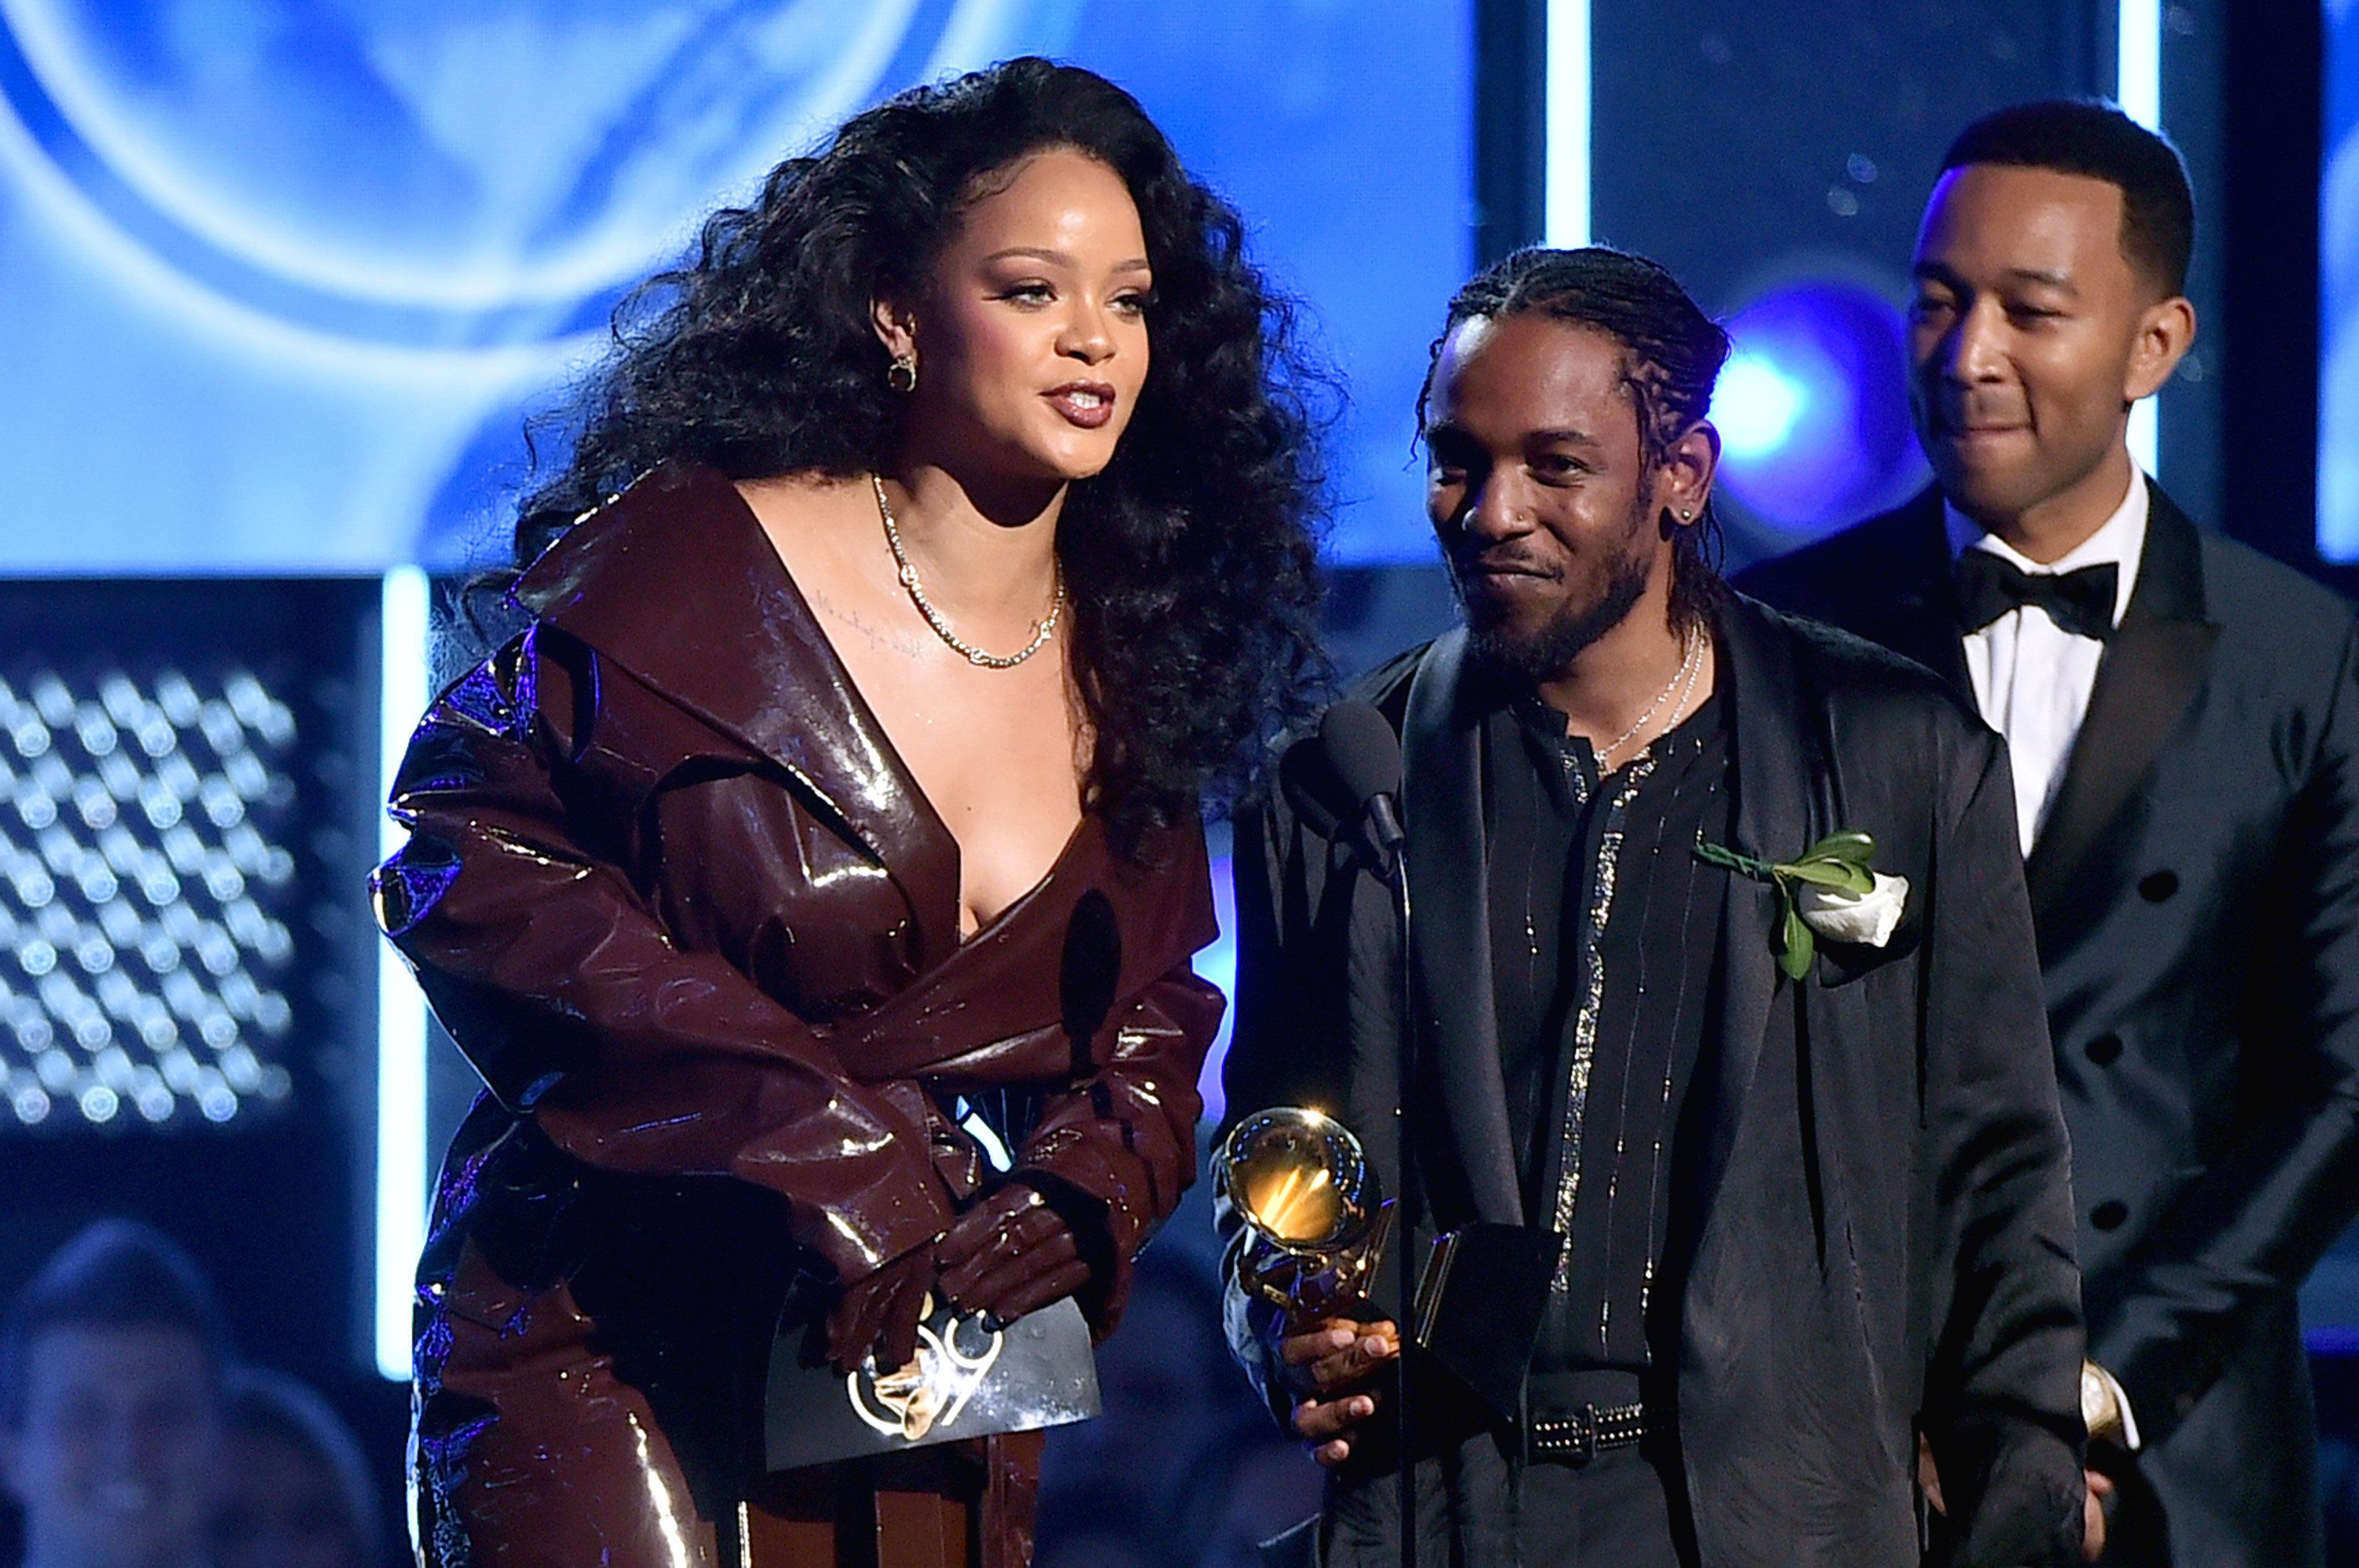 NEW YORK, NY - JANUARY 28:  (L-R) Recording artists Rihanna and Kendrick Lamar accept the Best Rap/Sung Performance award for 'Loyalty' from recording artist John Legend onstage during the 60th Annual GRAMMY Awards at Madison Square Garden on January 28, 2018 in New York City.  (Photo by Theo Wargo/WireImage)